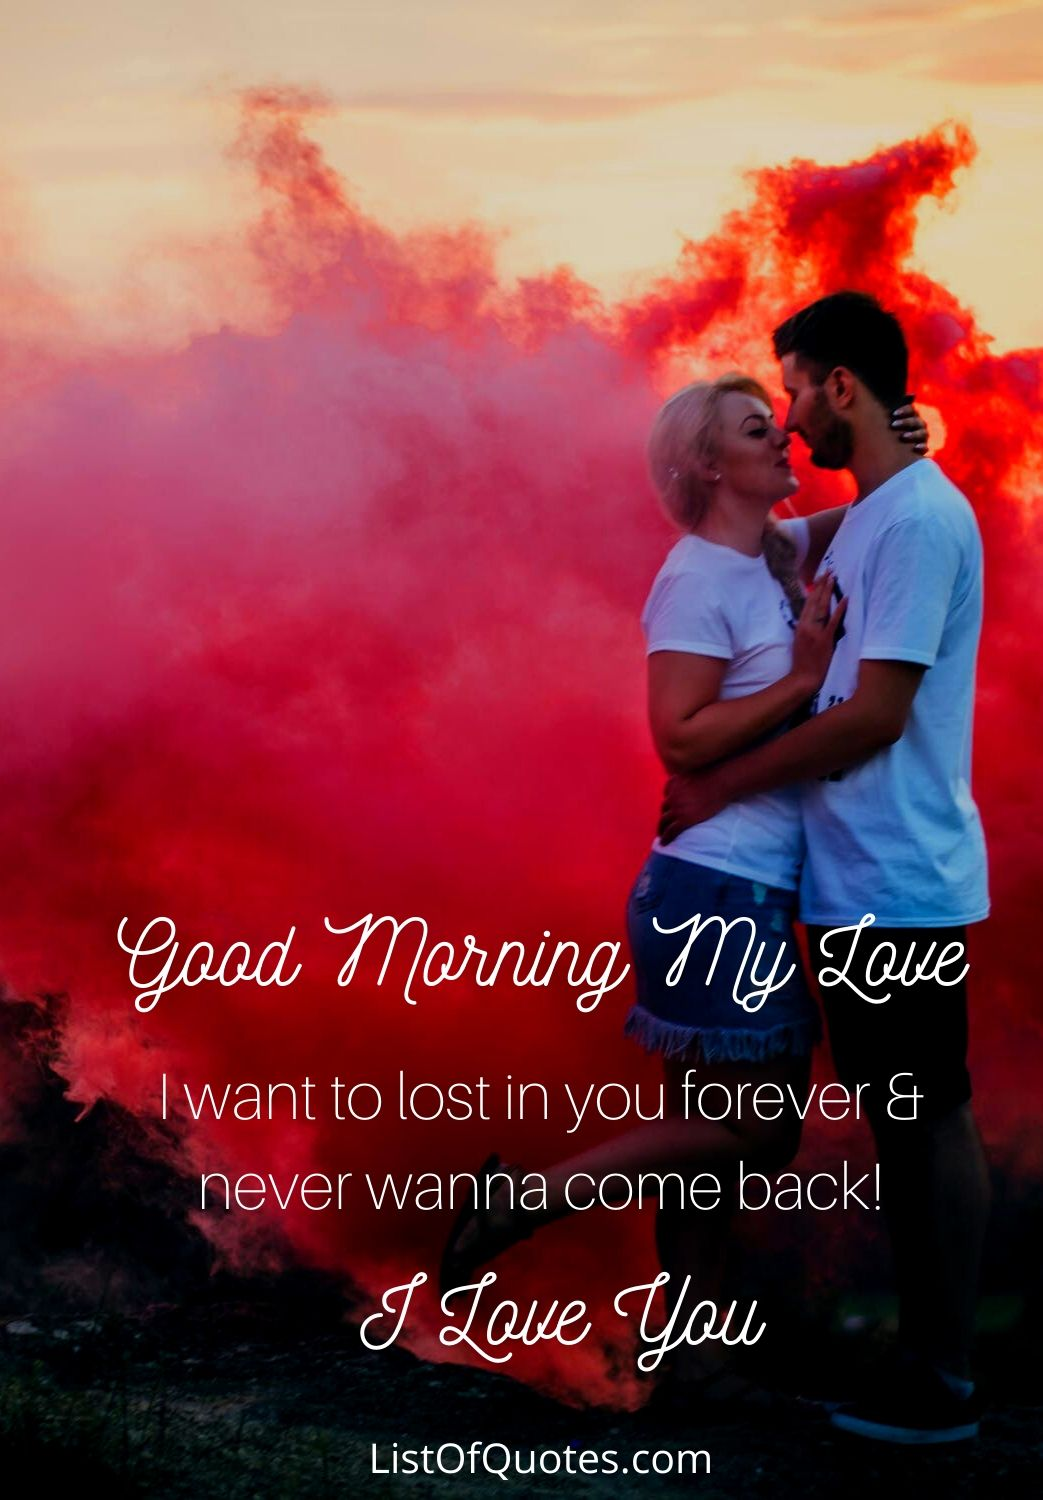 romantic cute good morning quotes messages for girlfriend wife sweetheart bae(free download)